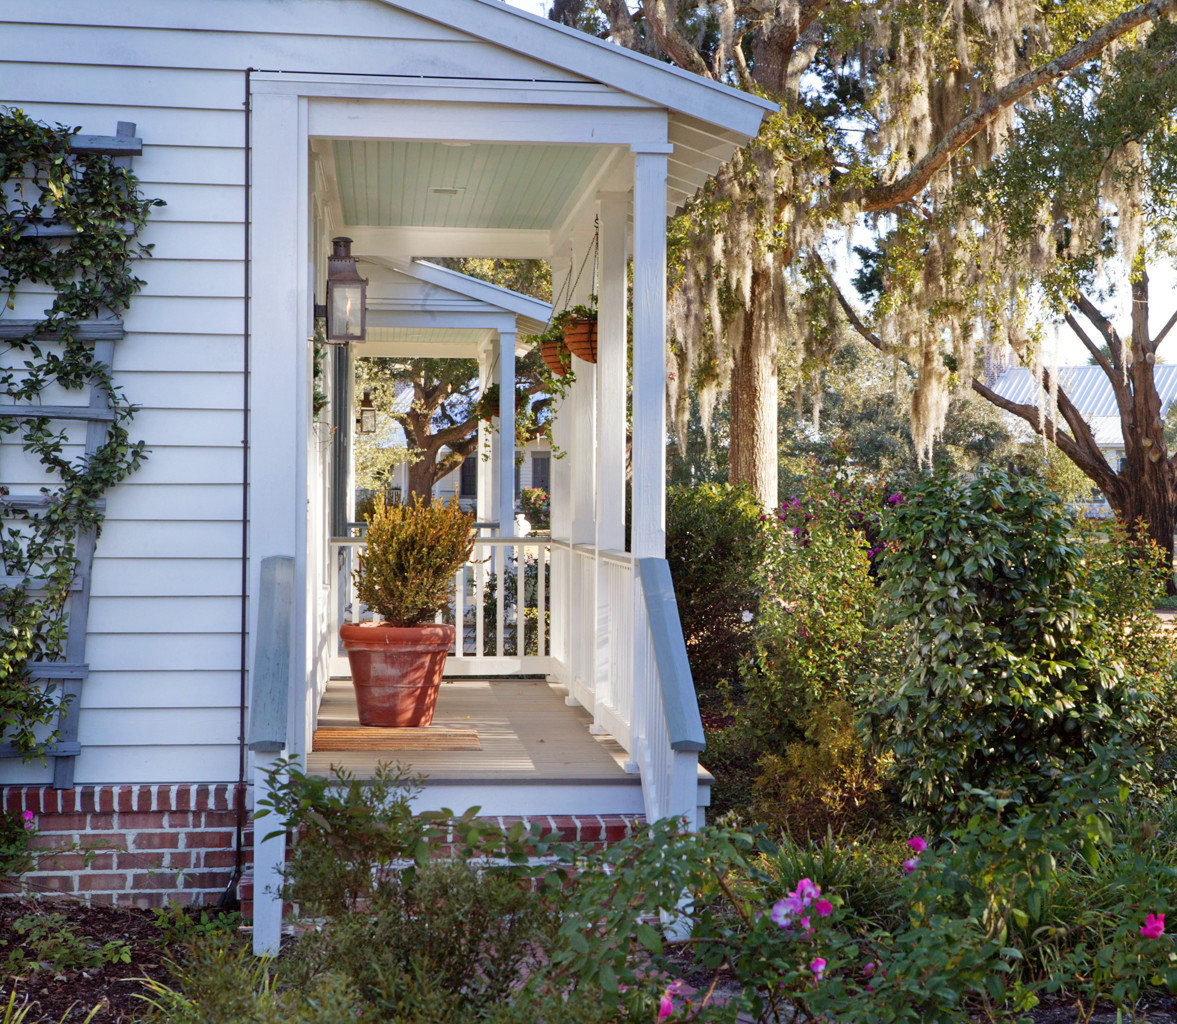 Country Exterior Garden Grounds Inn Outdoors Patio Waterfront tree building house porch home backyard yard outdoor structure cottage orangery flower Courtyard